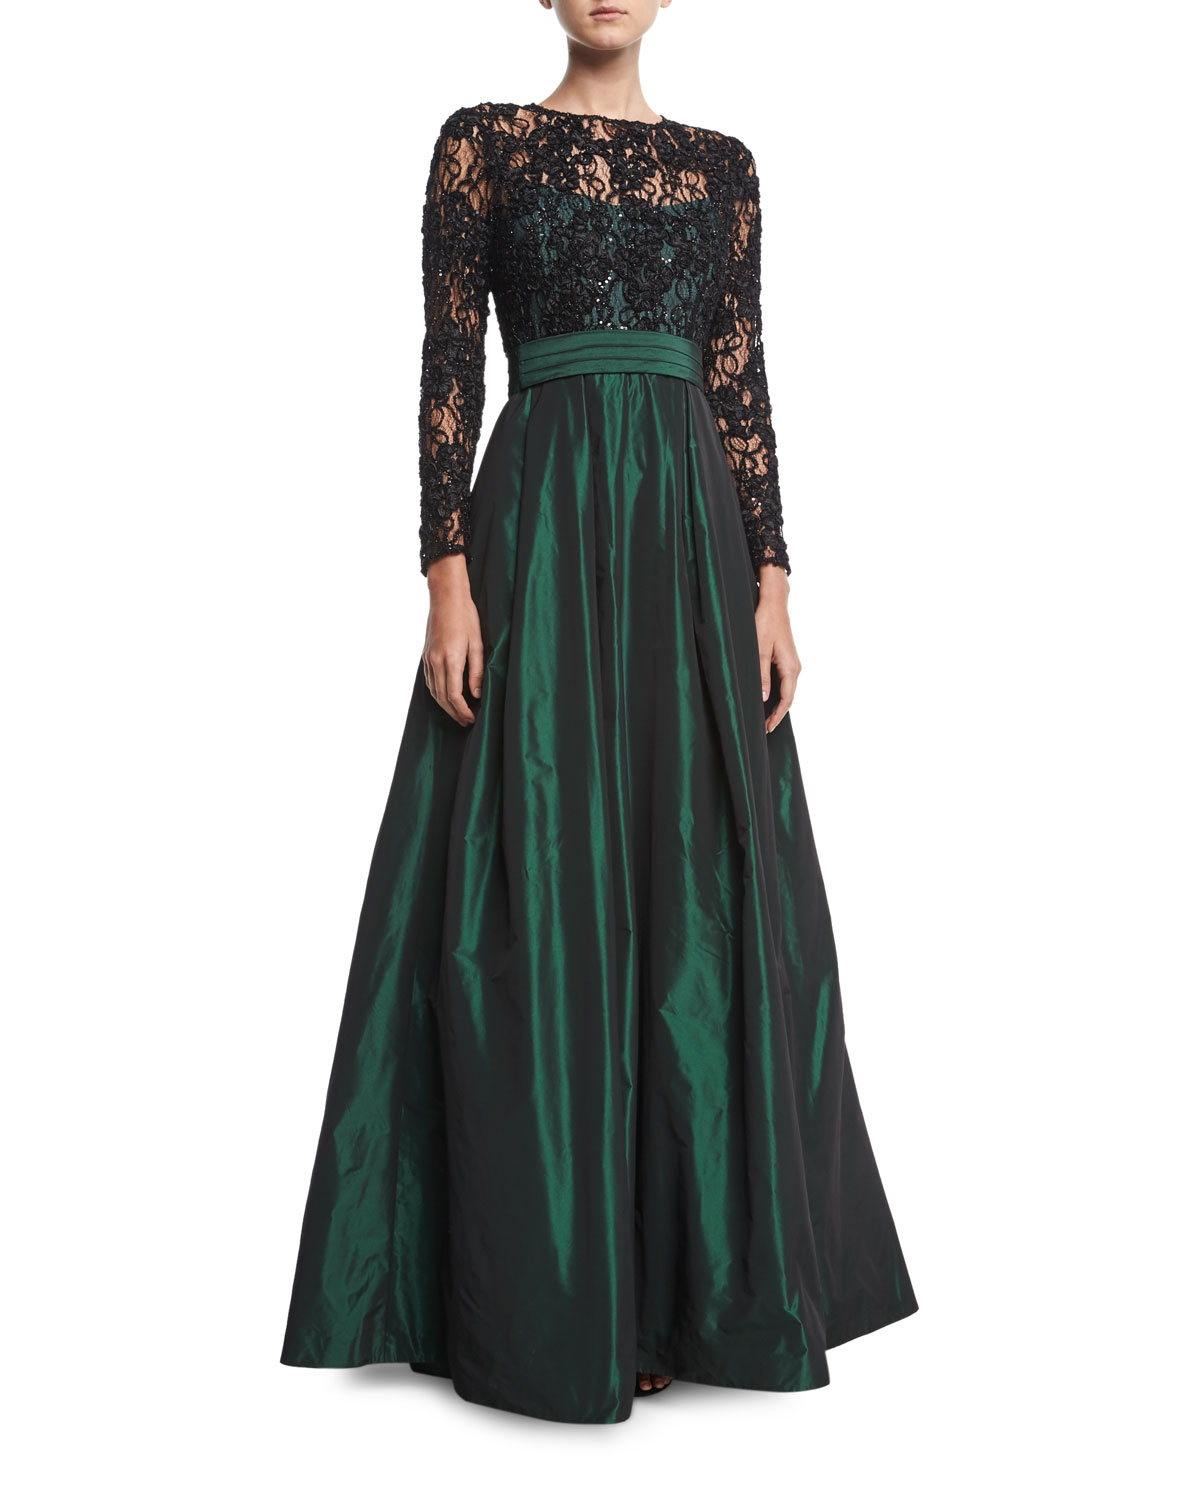 Lace Long-Sleeve Beaded Top Taffeta Full Skirt Evening Gown